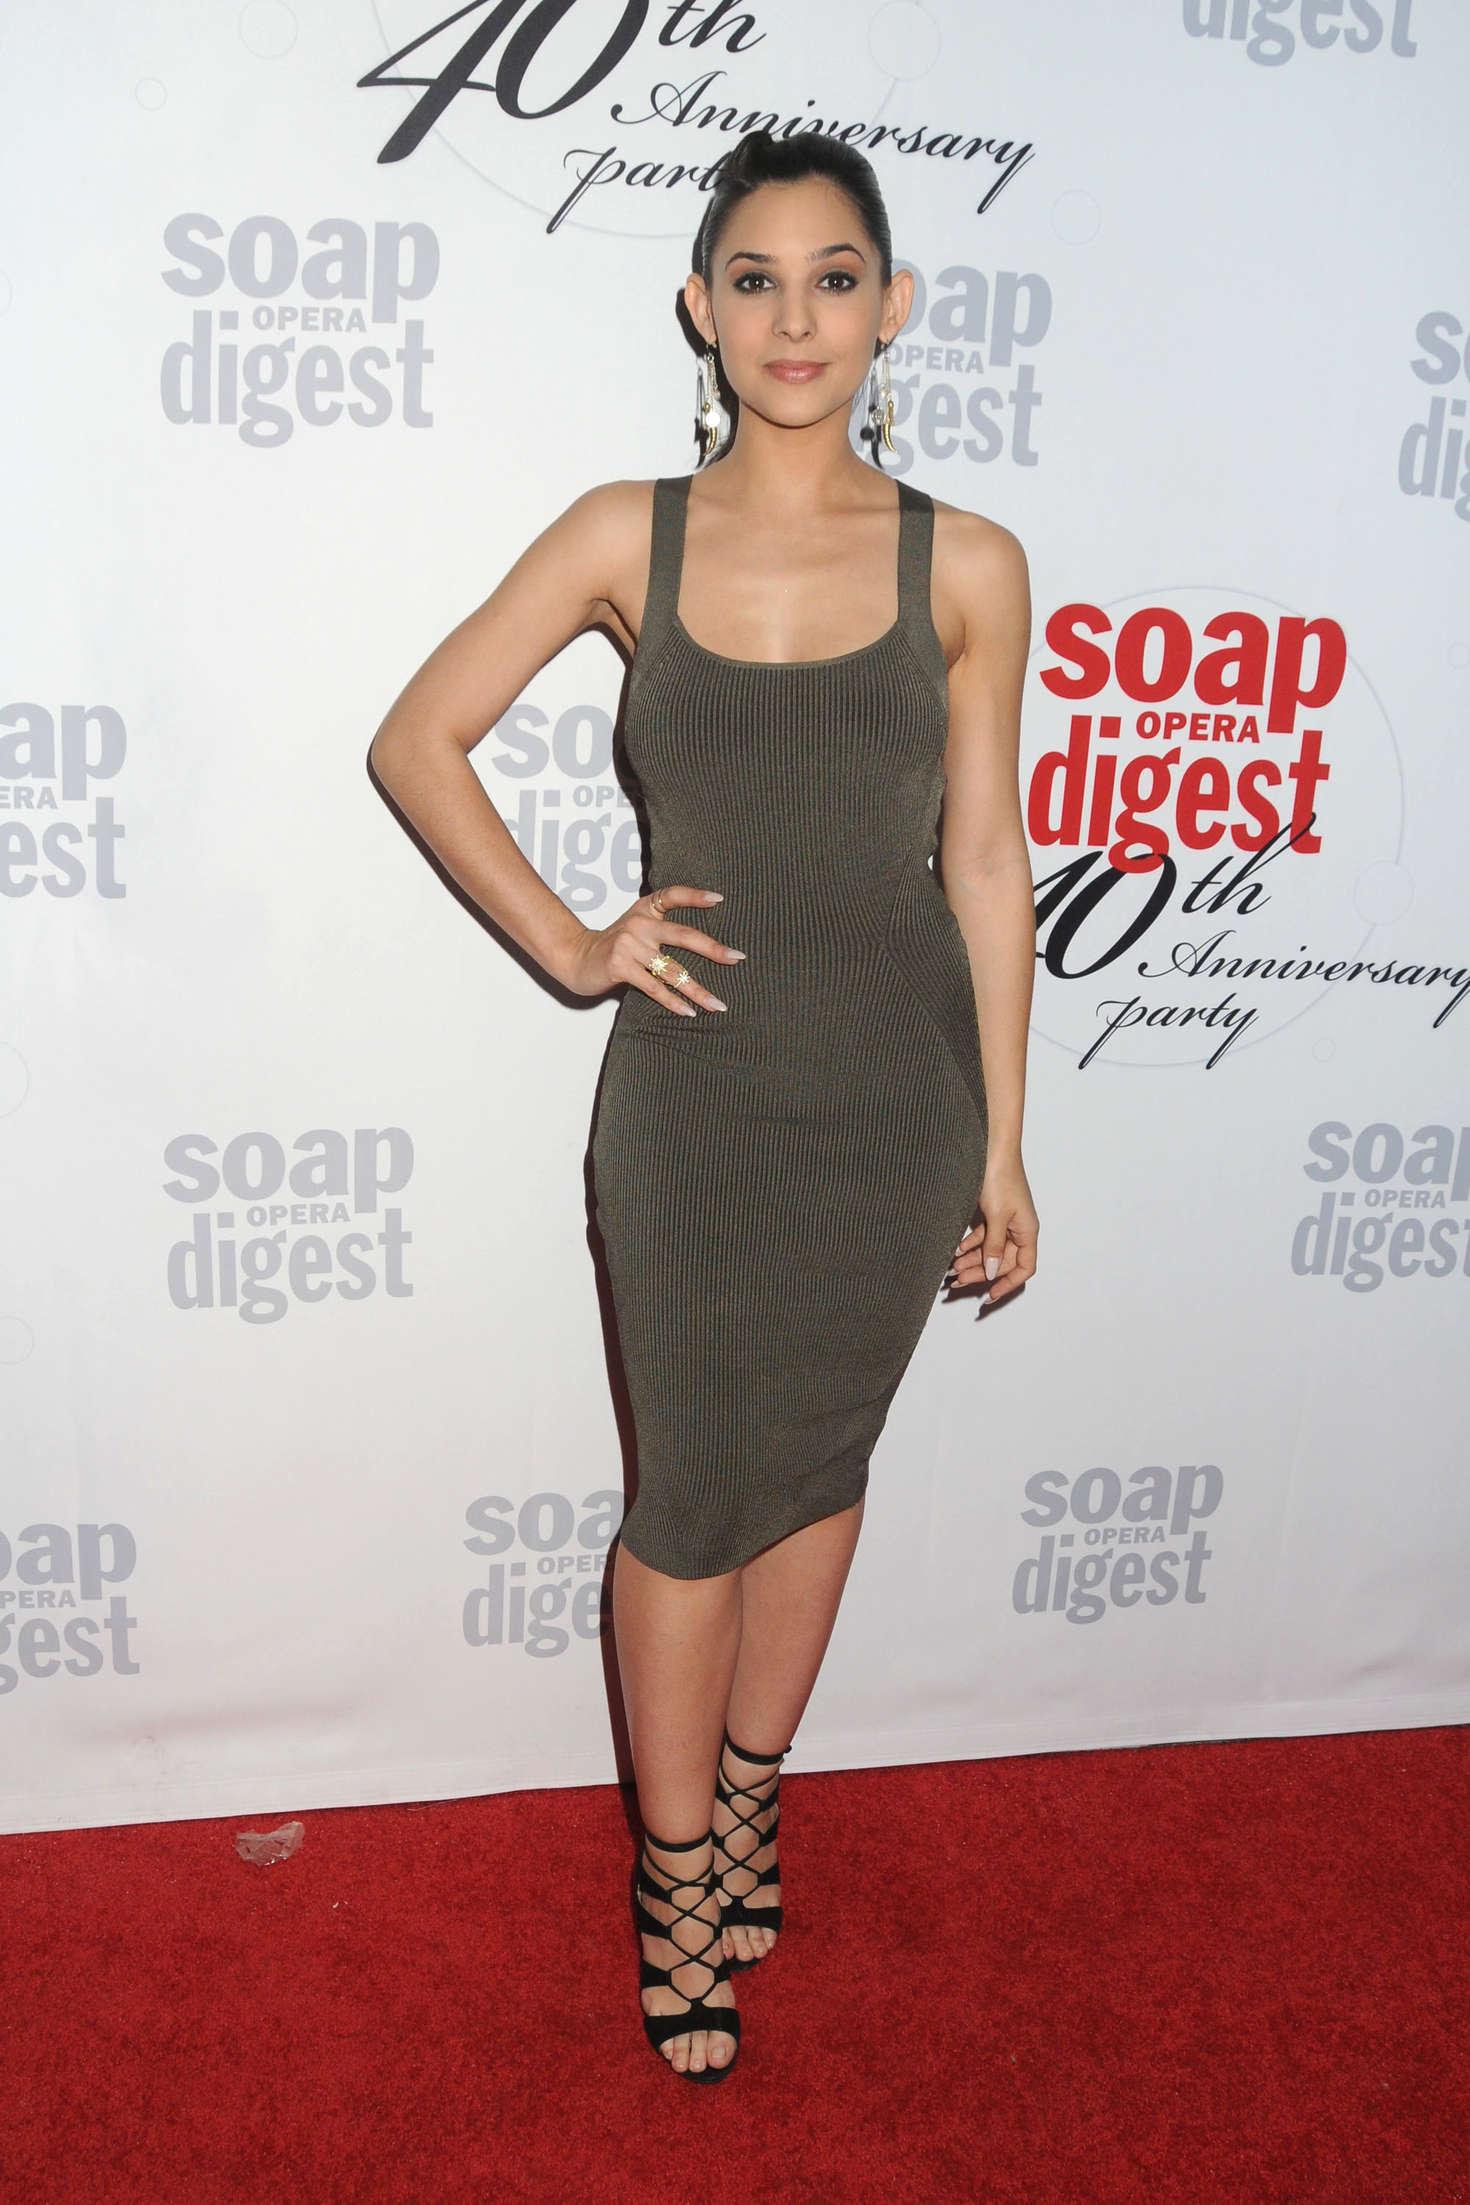 Camila Banus The Soap Opera Digests Anniversary Event in Hollywood